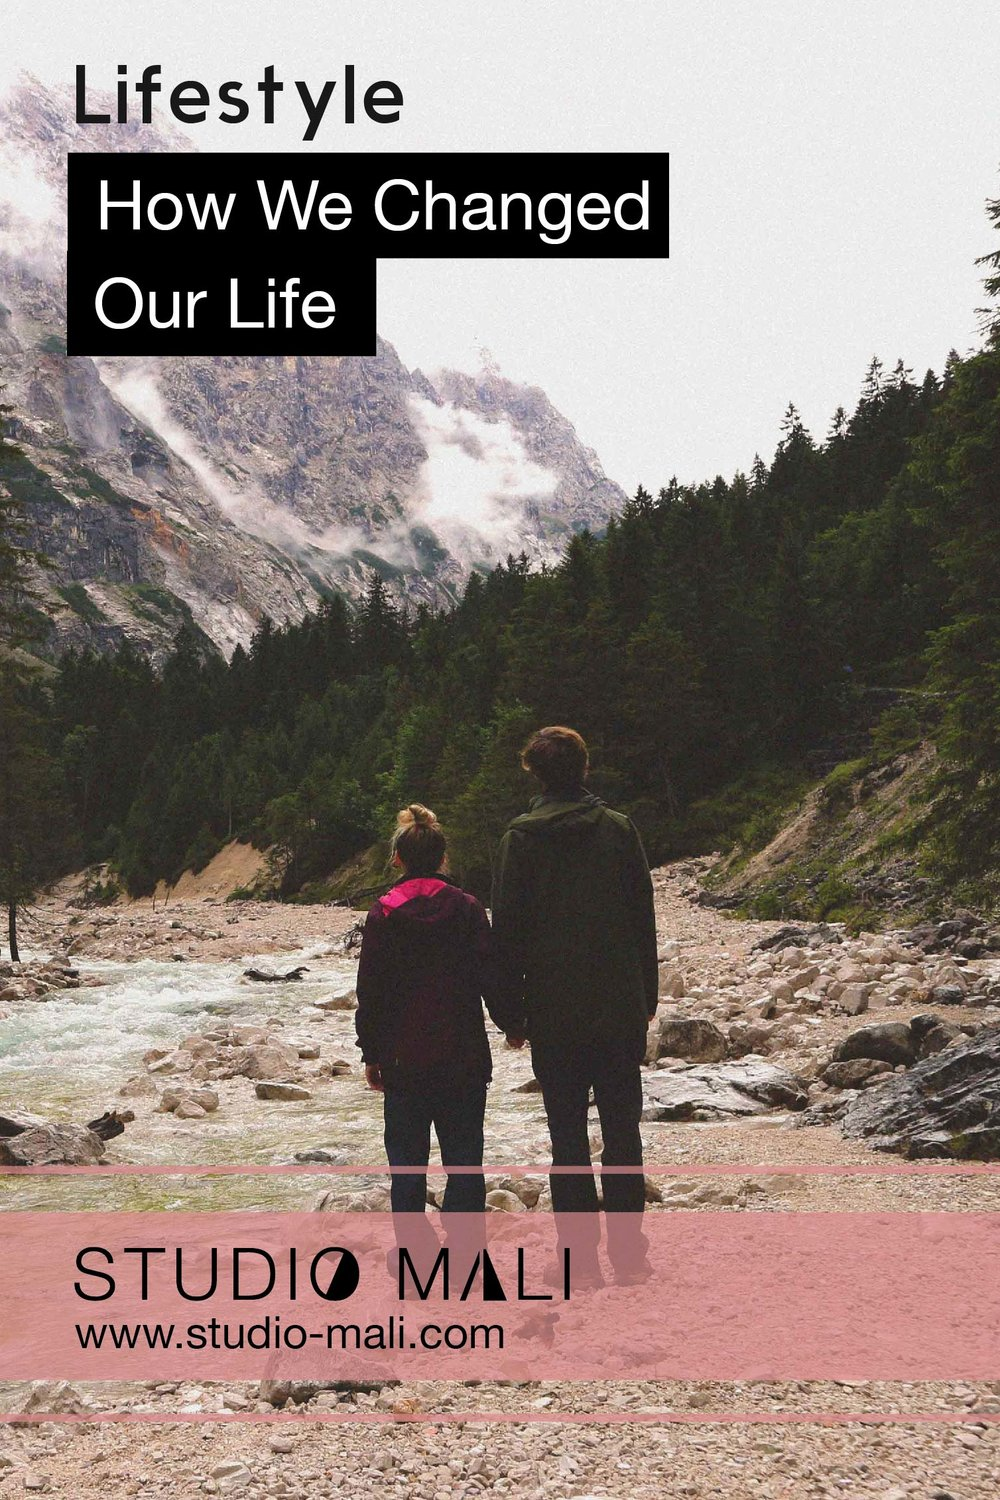 Lifestyle - How We Changed Our Life, By Studio Mali.jpg